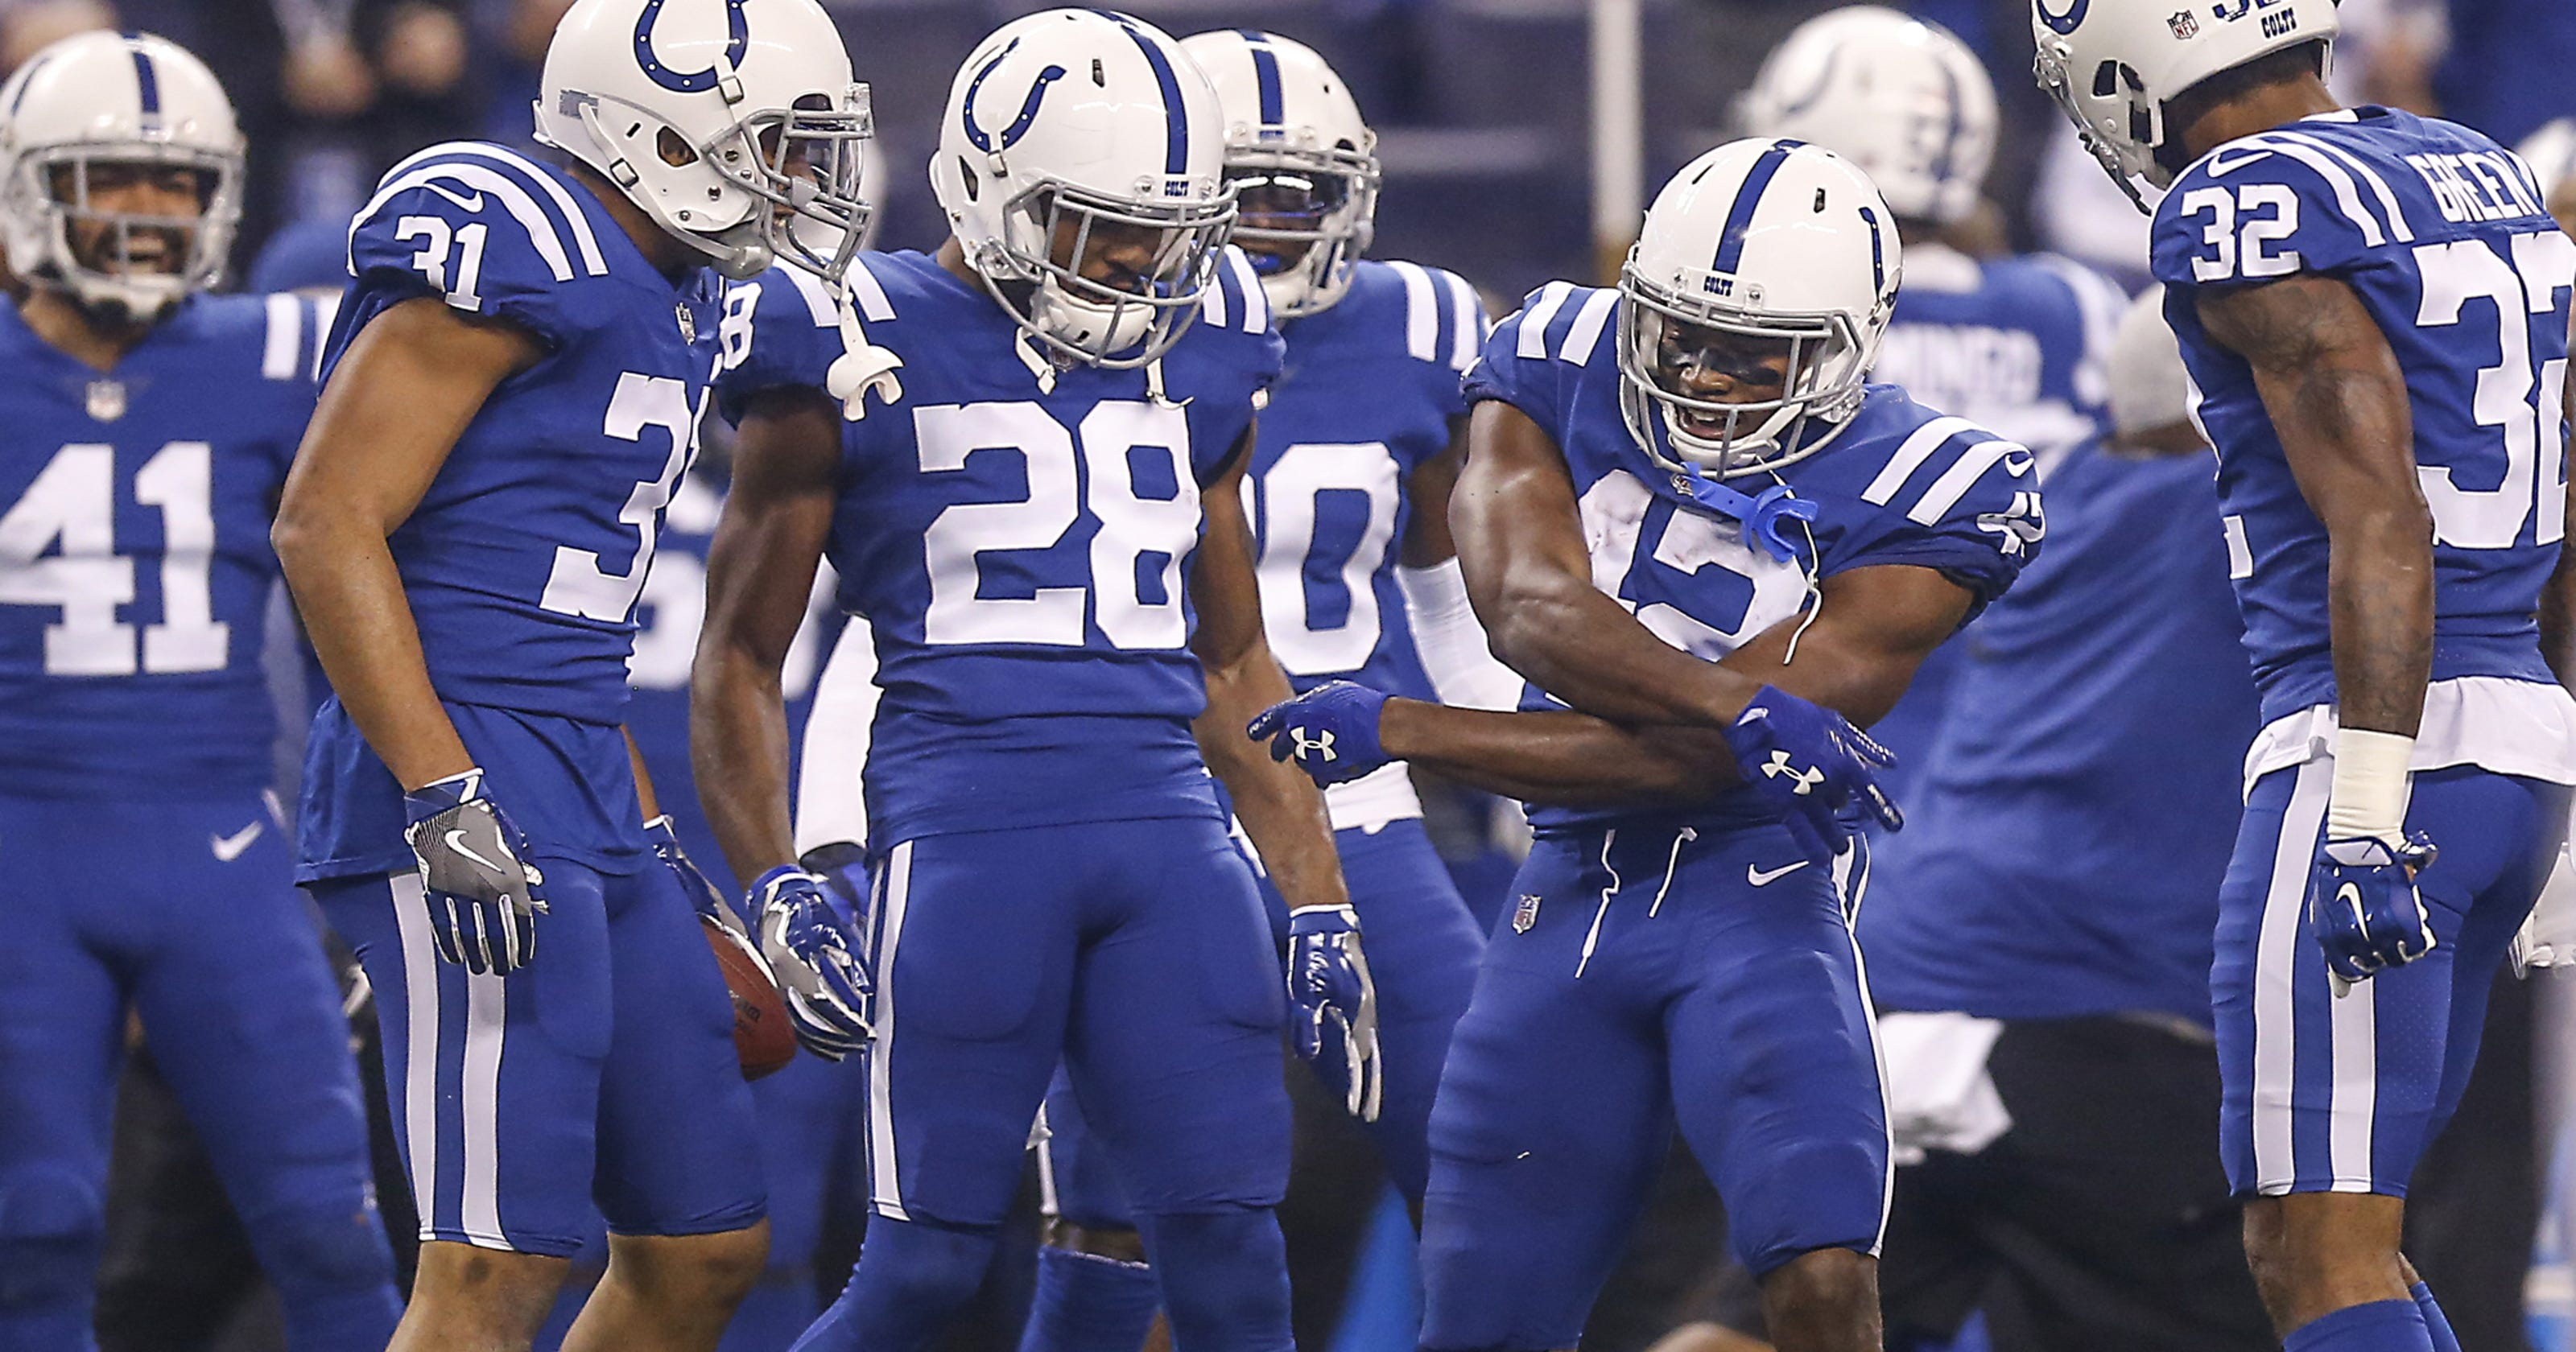 Colts vs. Broncos  Color rush uniforms bring a boost to matchup b59428aa9